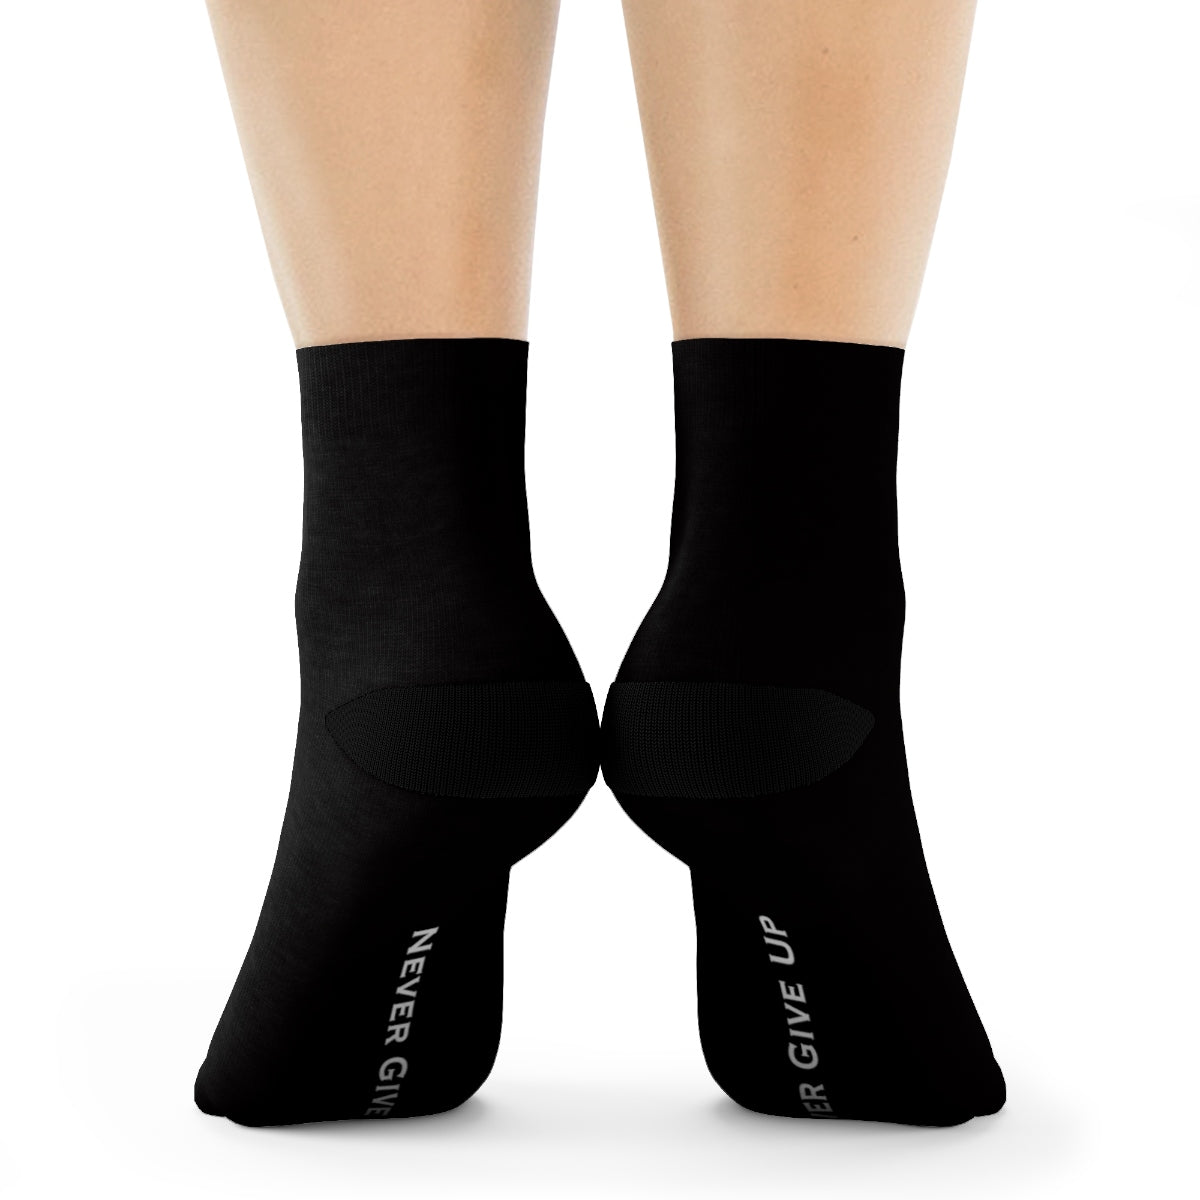 Never Give Up Live More Crew Socks - Live More